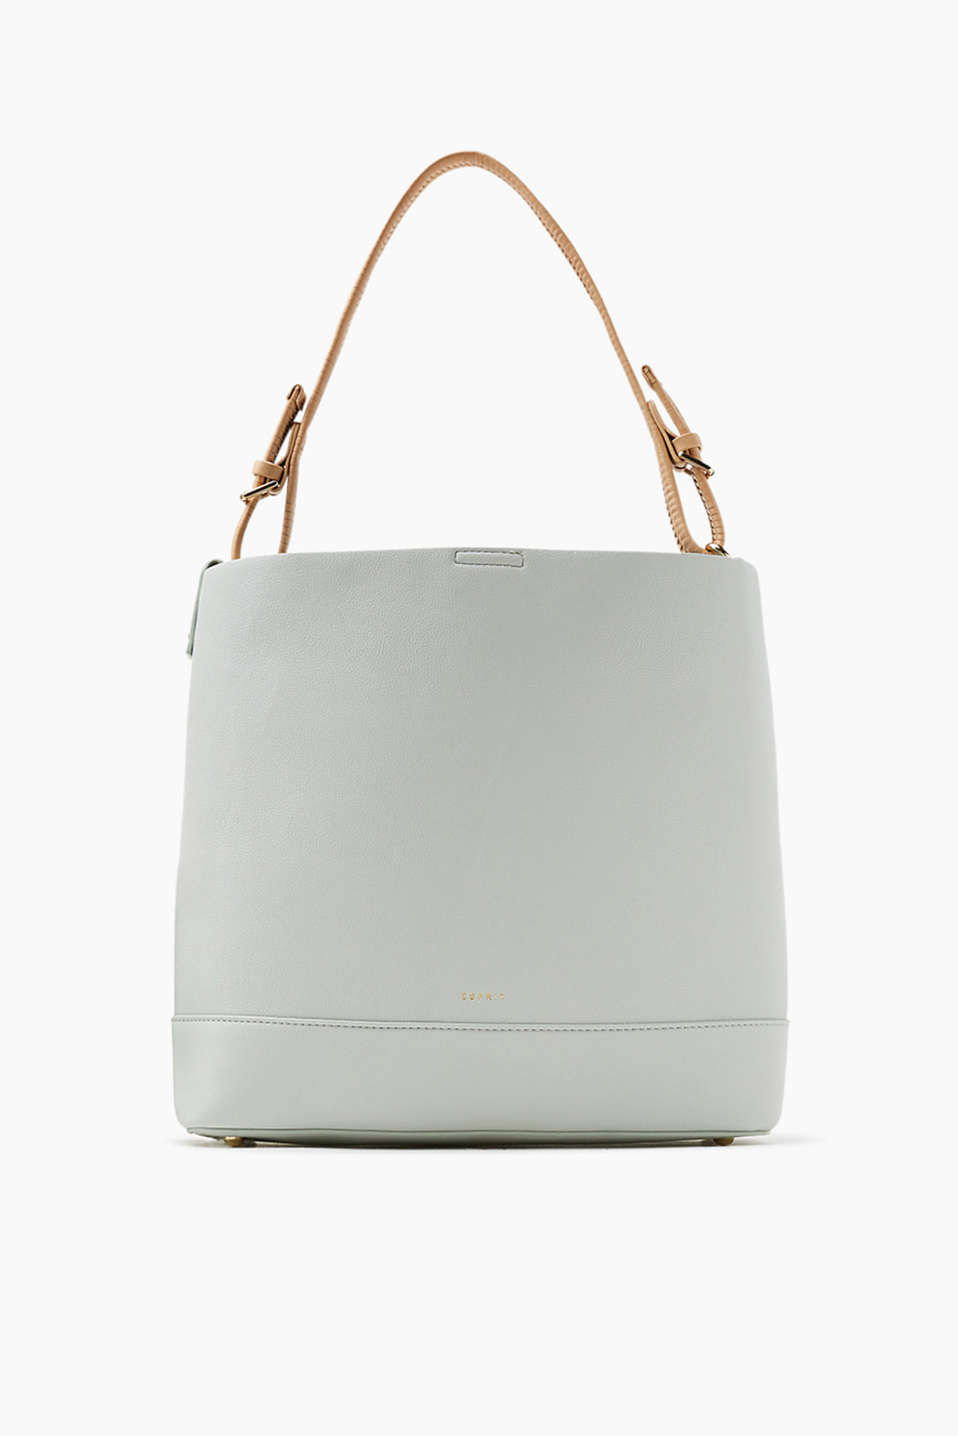 Hobo bag in authentically grained faux leather with an additional detachable shoulder strap